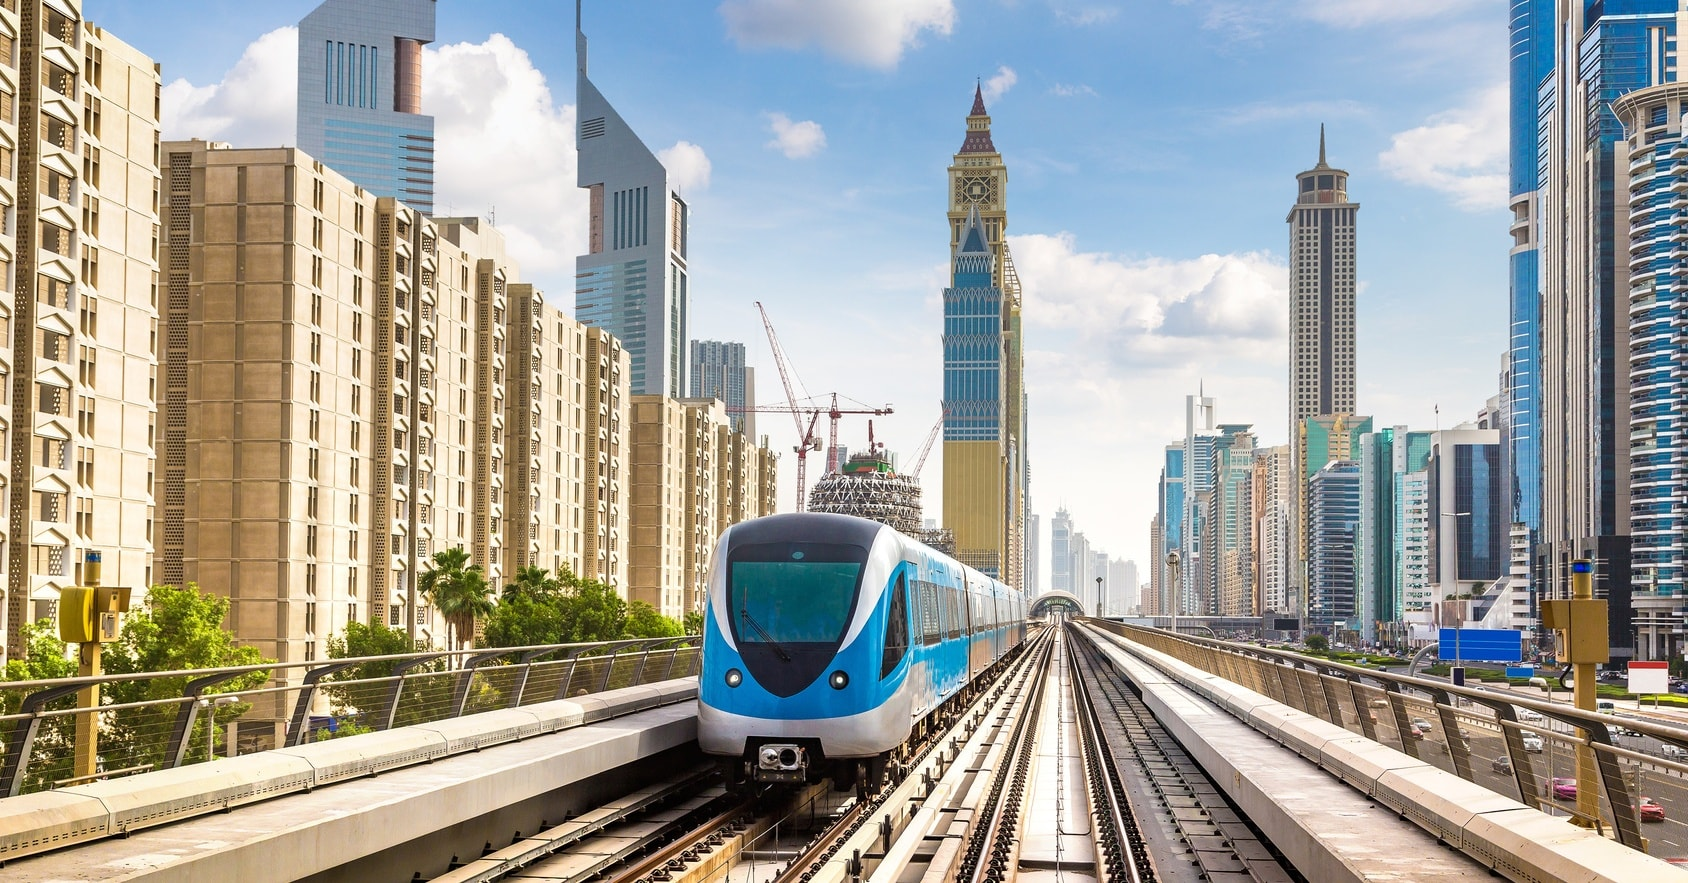 DUBAI-METRO-DUBAI-BUSES-dubai-public-transport-day-giveaways-